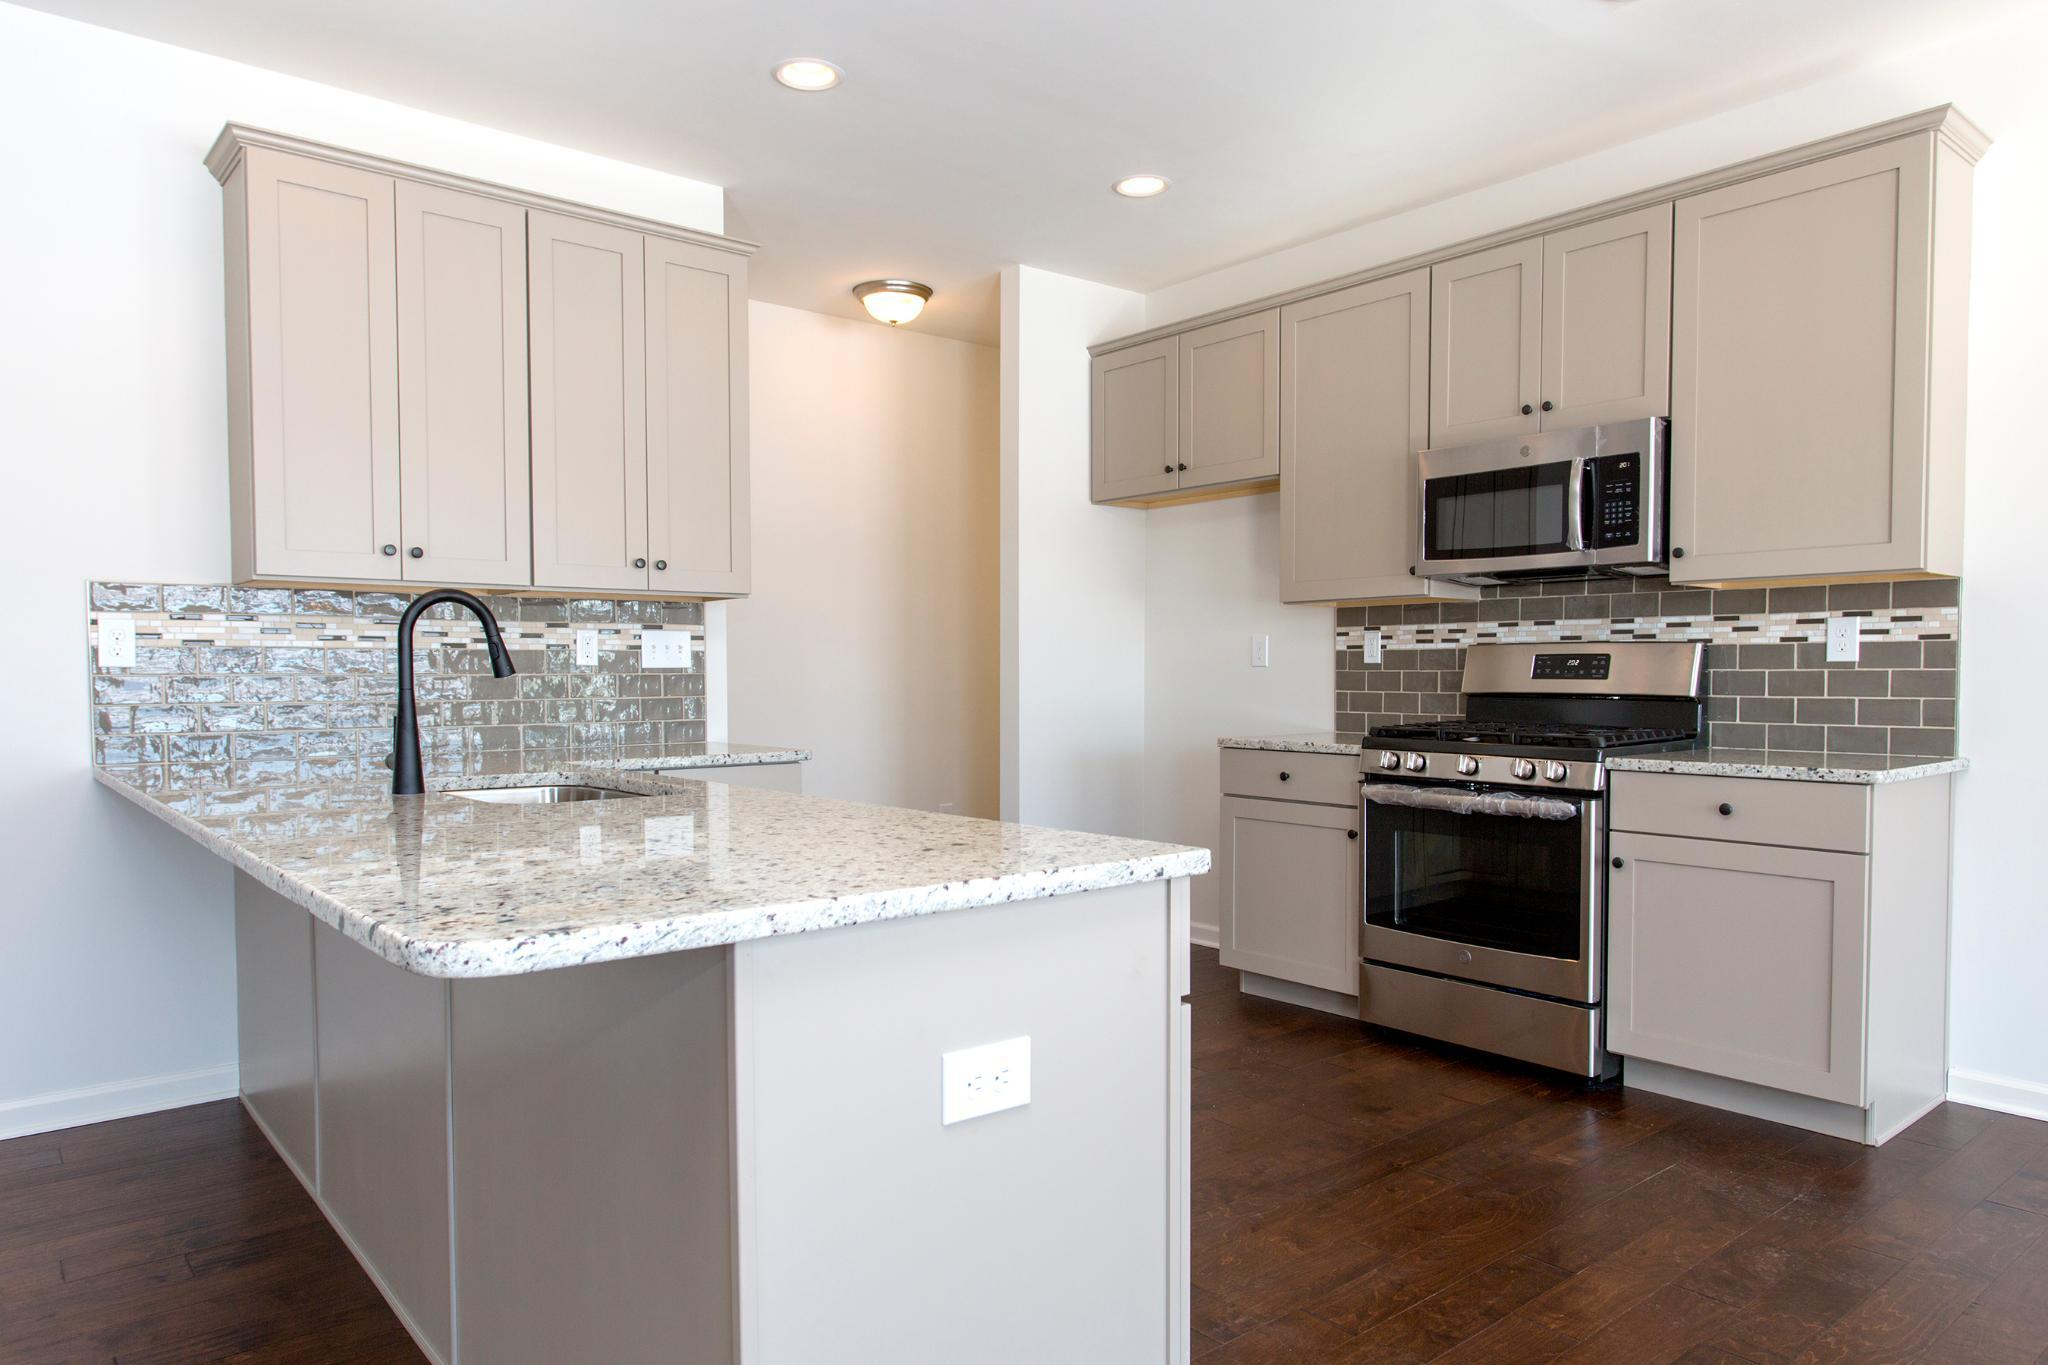 Kitchen featured in the St. Andrews Traditional By Tuskes Homes in Scranton-Wilkes-Barre, PA